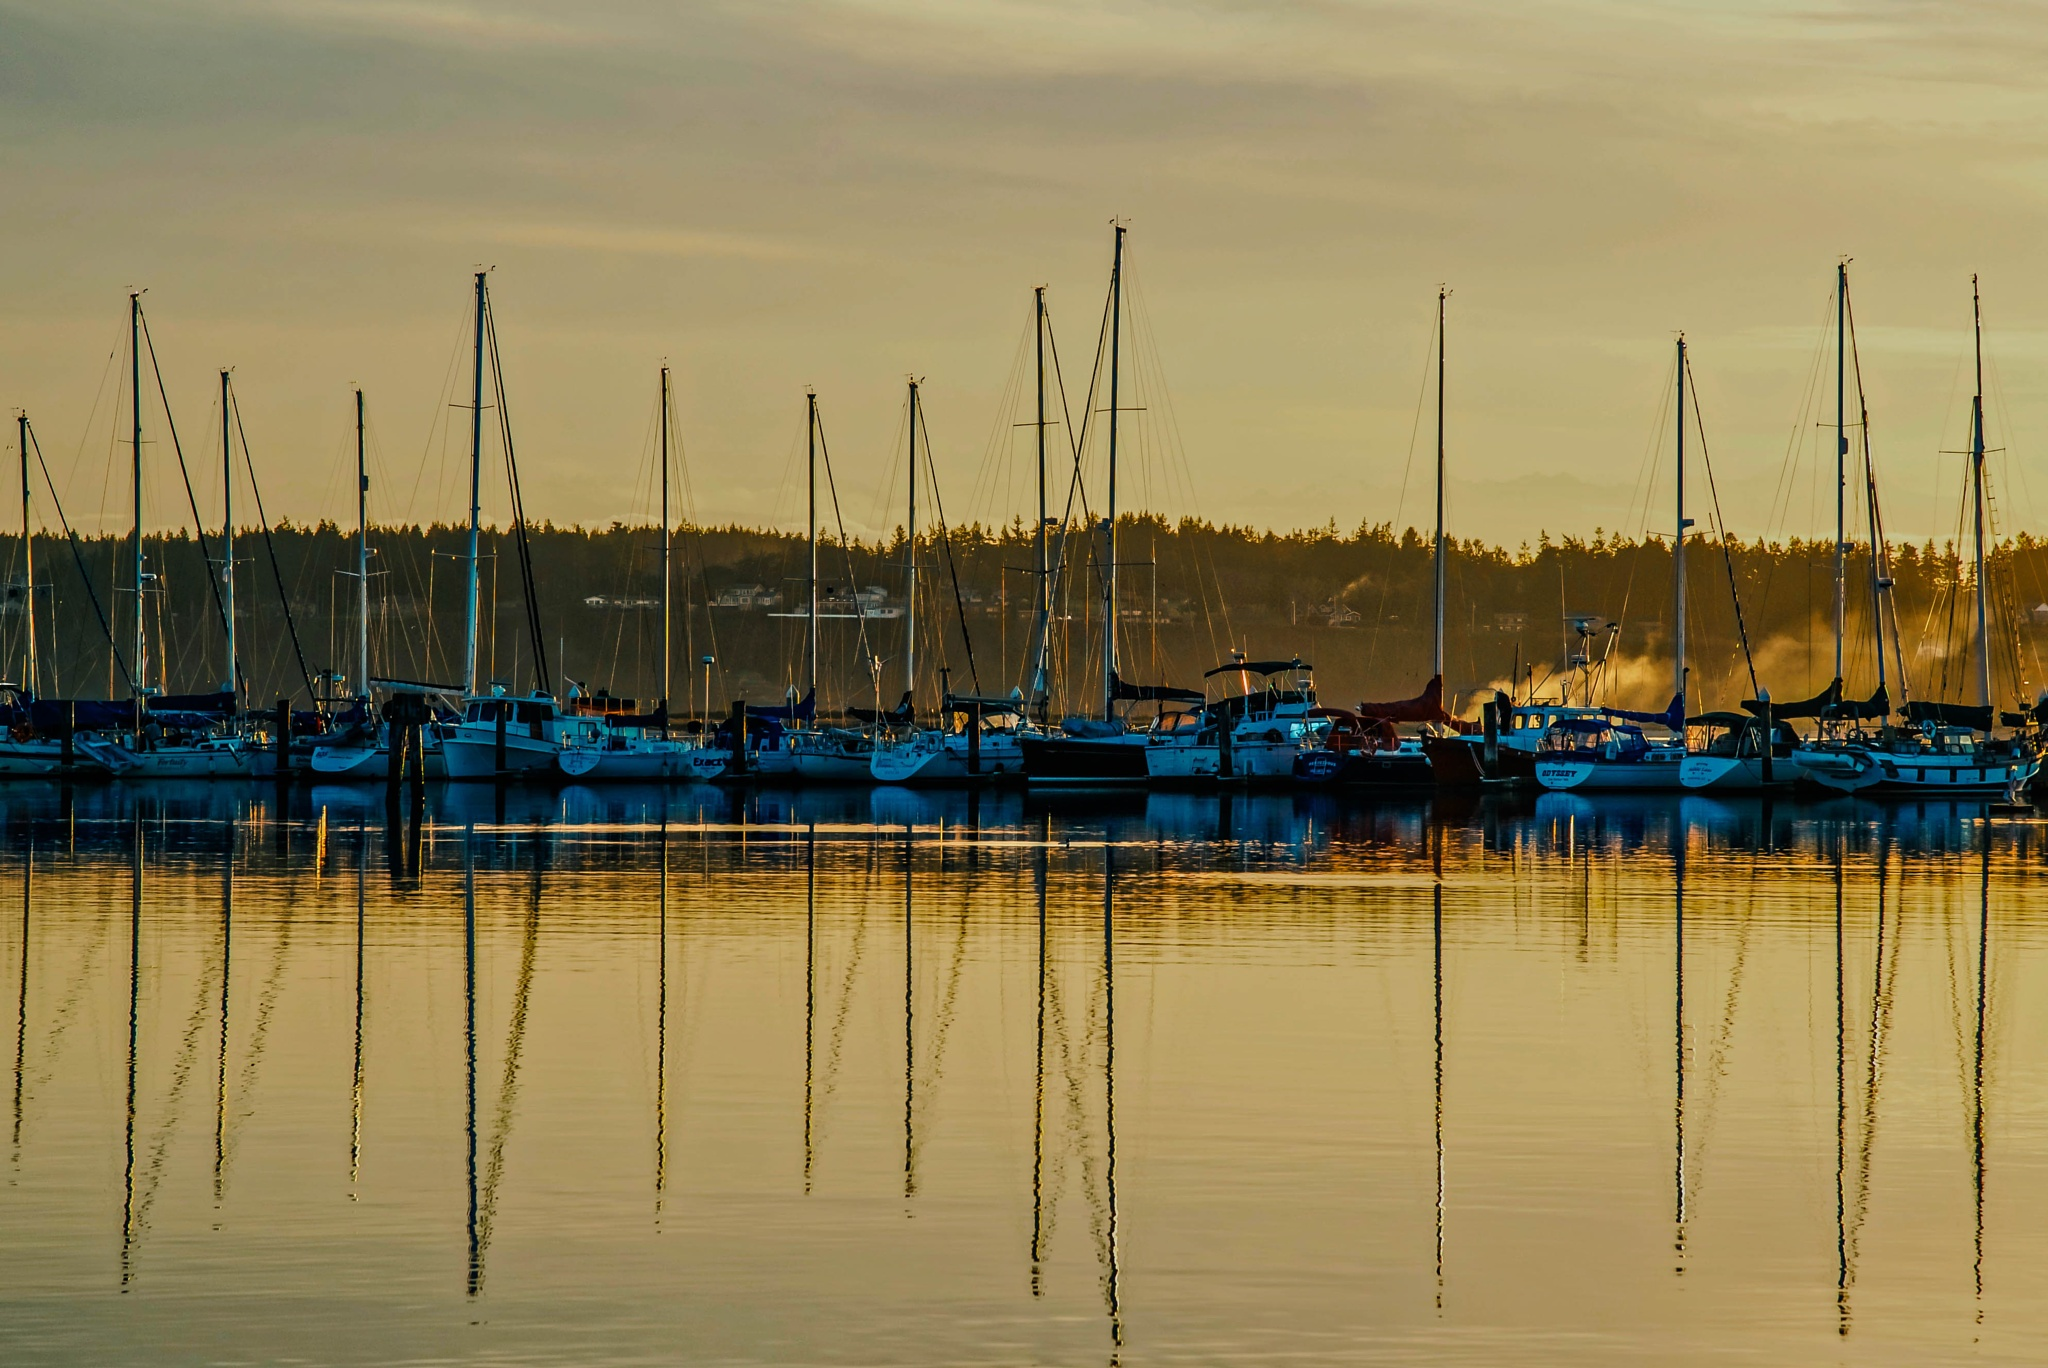 sunset reflection by MTM